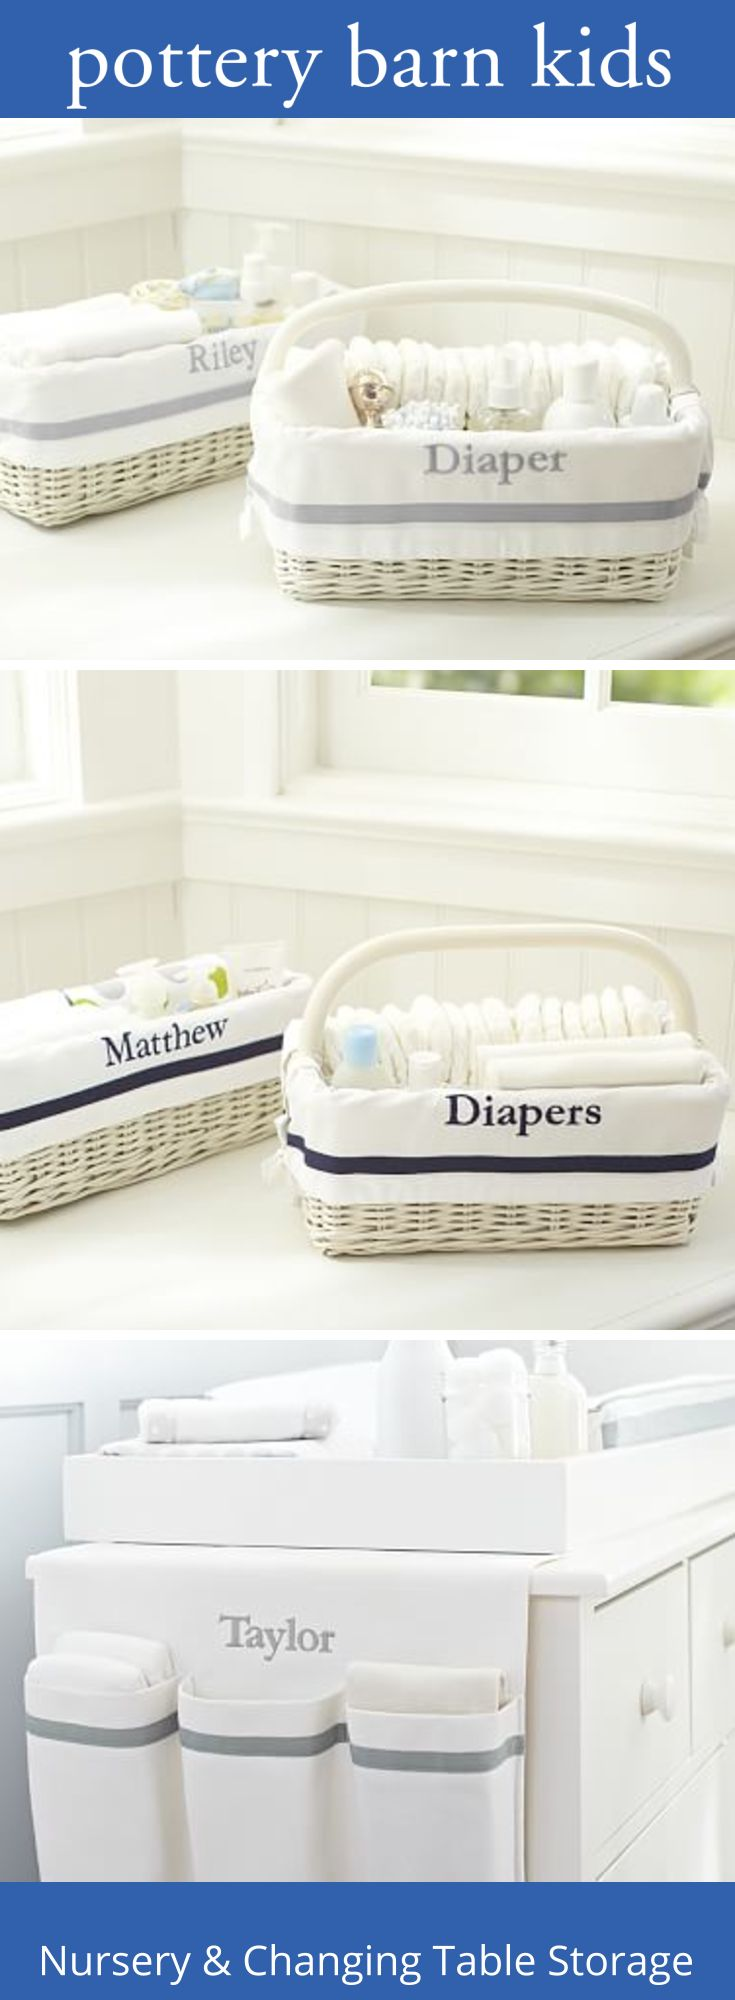 17 Best ideas about Changing Table Storage on Pinterest